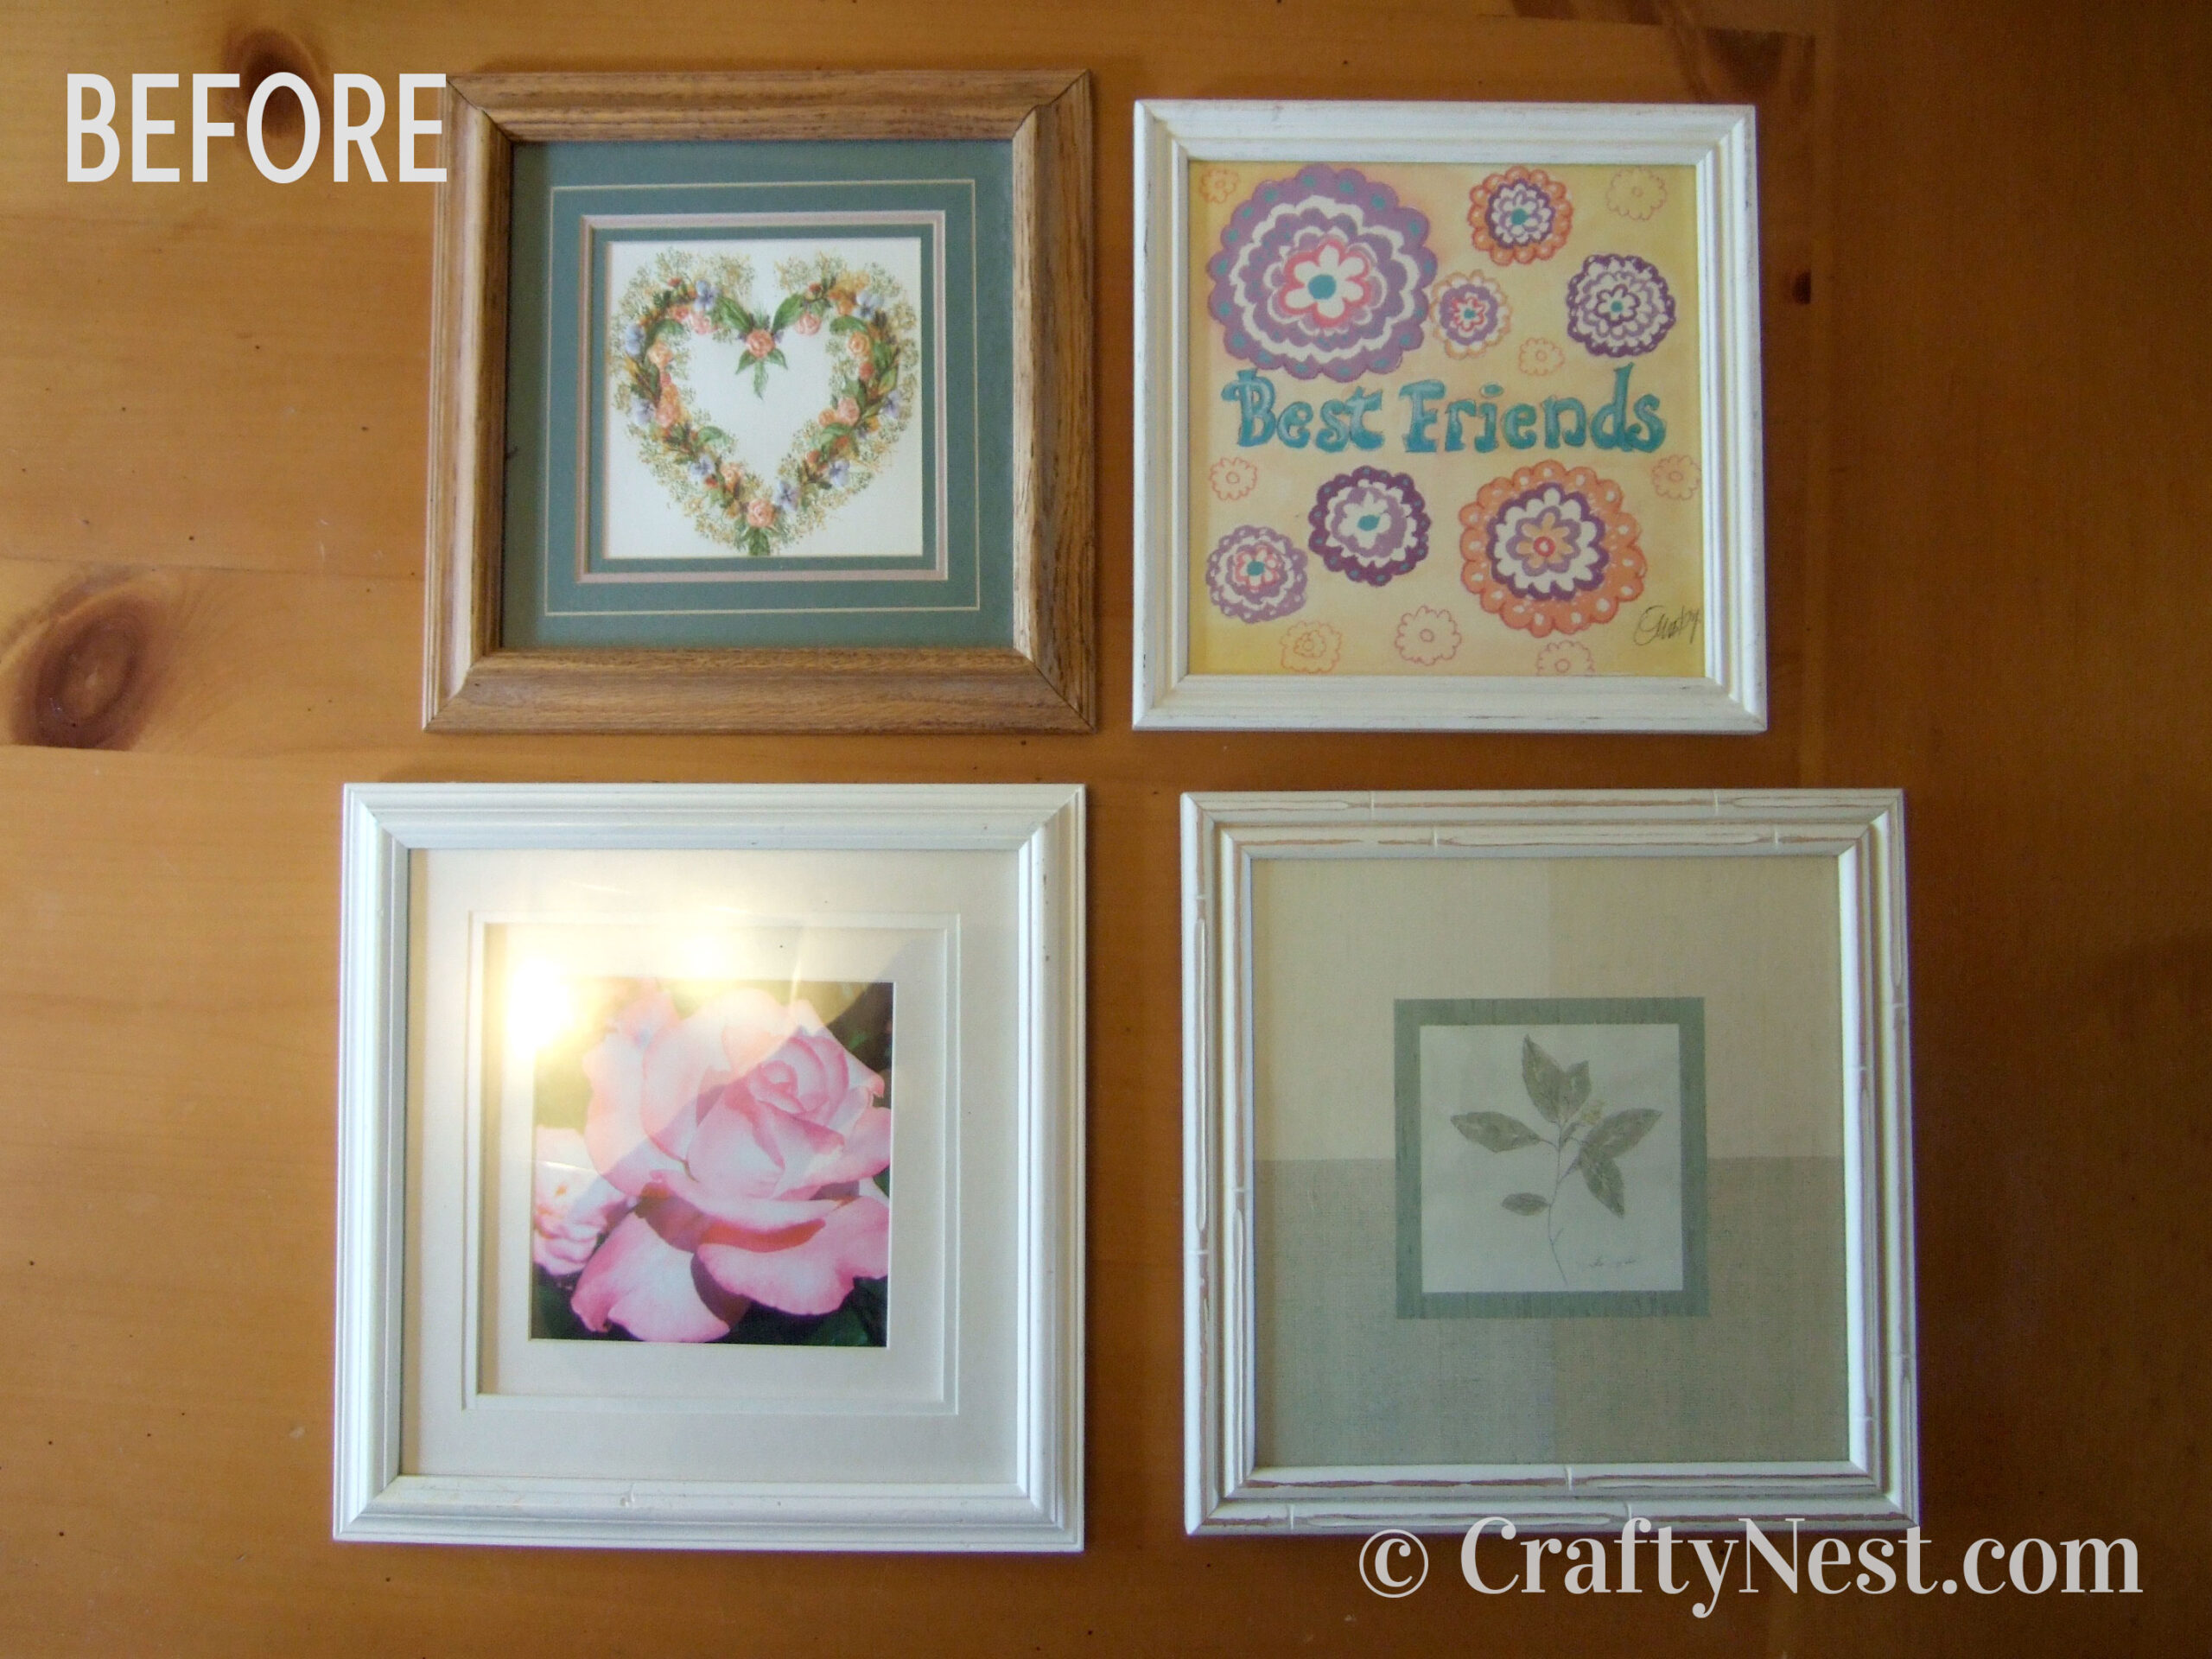 Mismatched thrift-store picture frames, photo